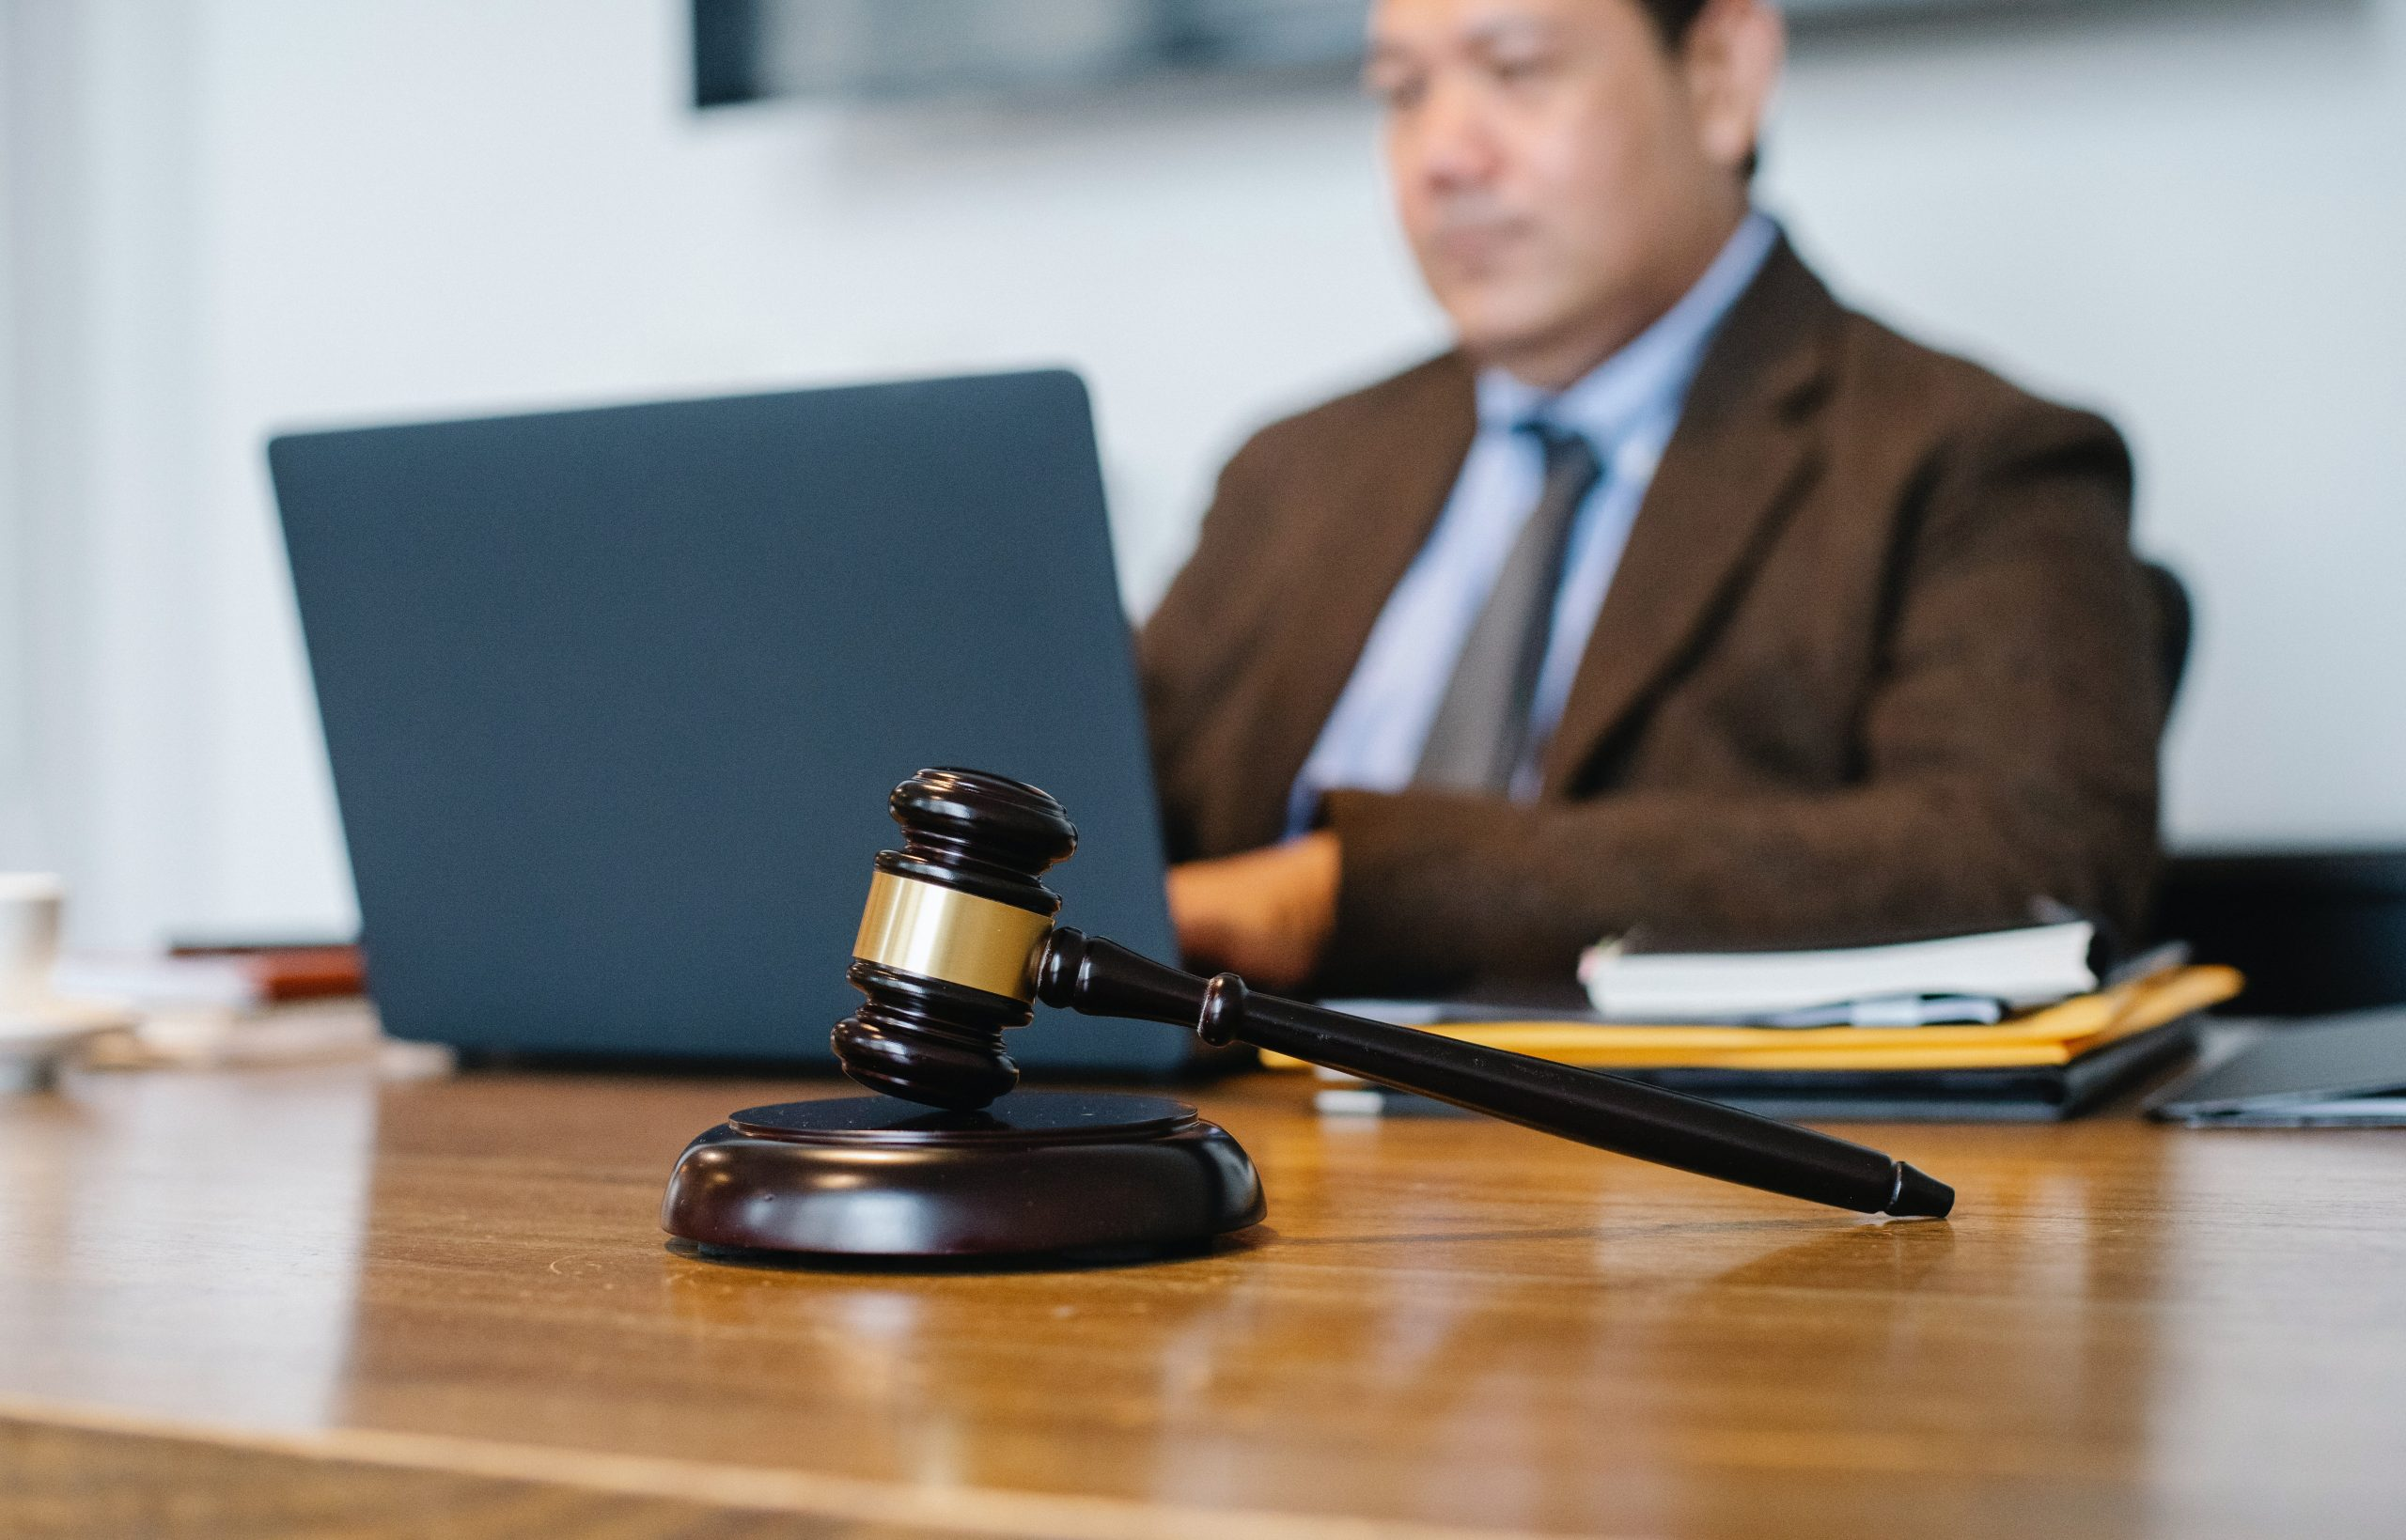 Advantages of Using Asynchronous Activities for Online Mock Jury Trials